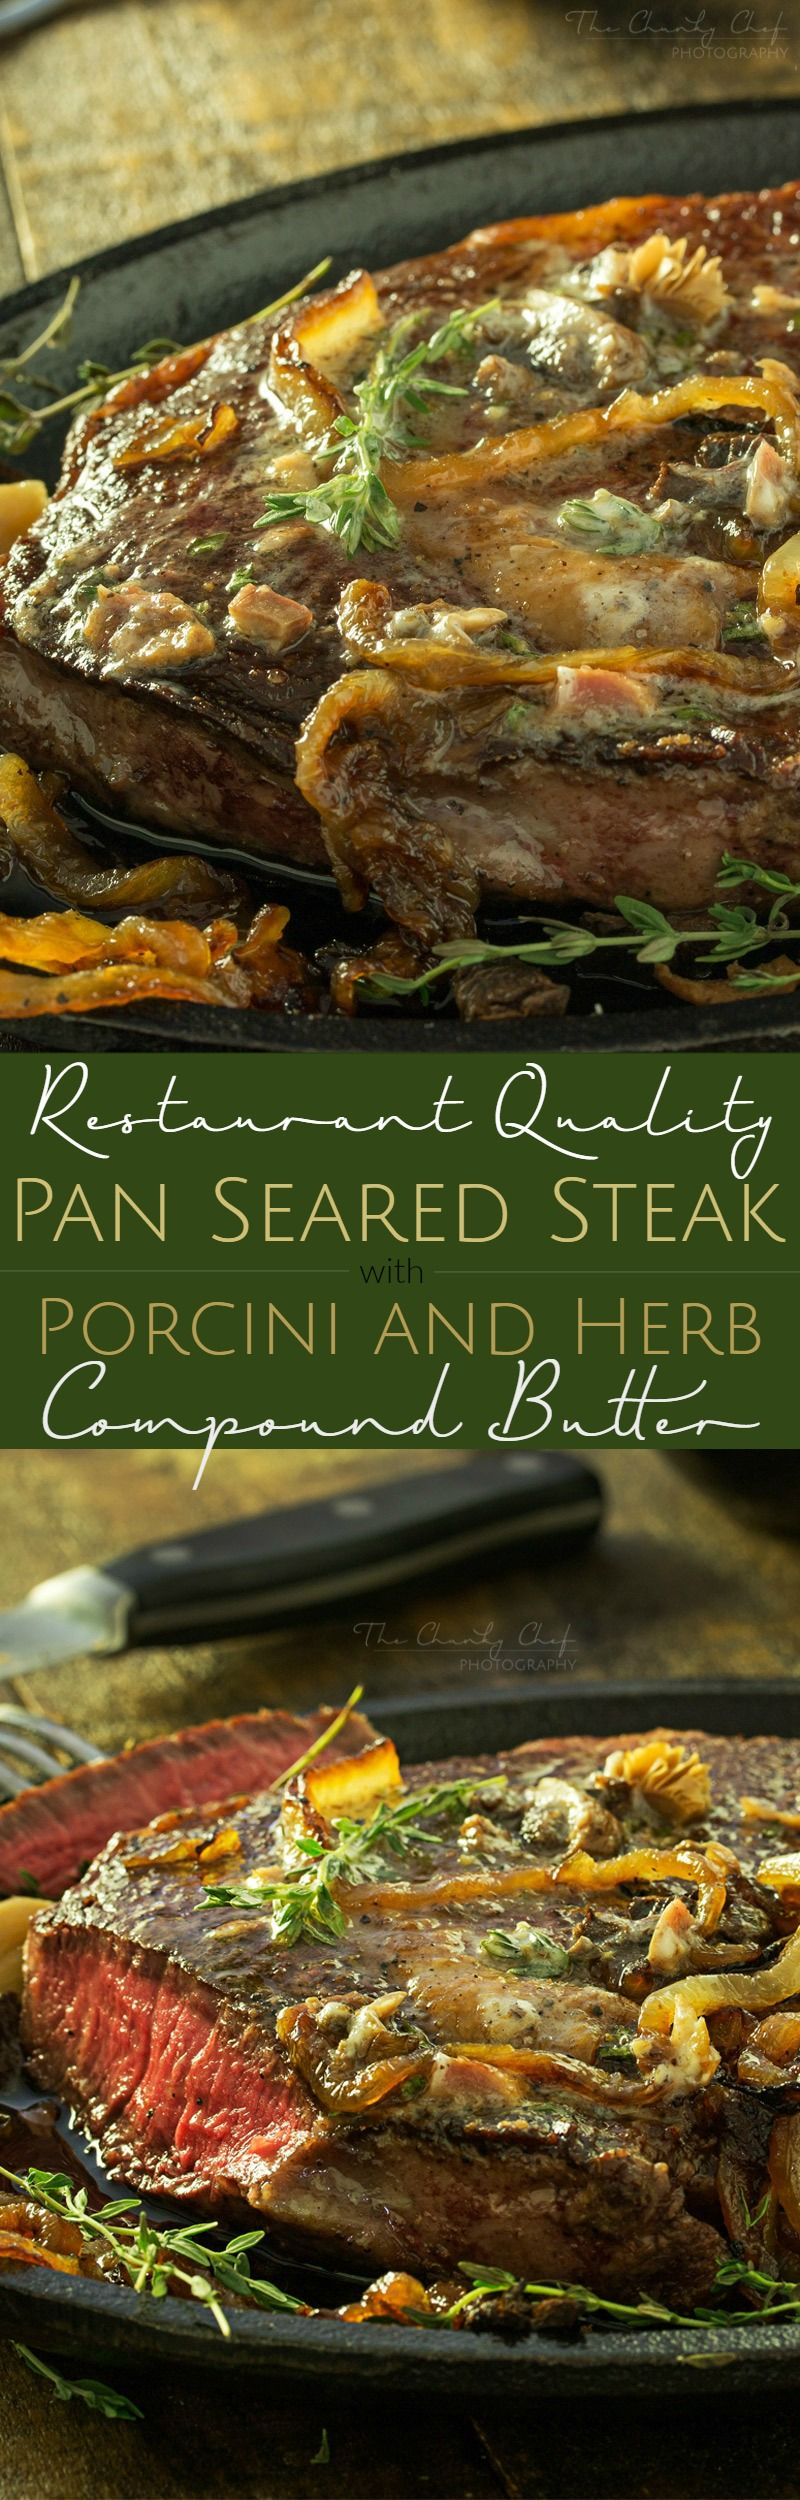 how to cook a tender steak in a pan